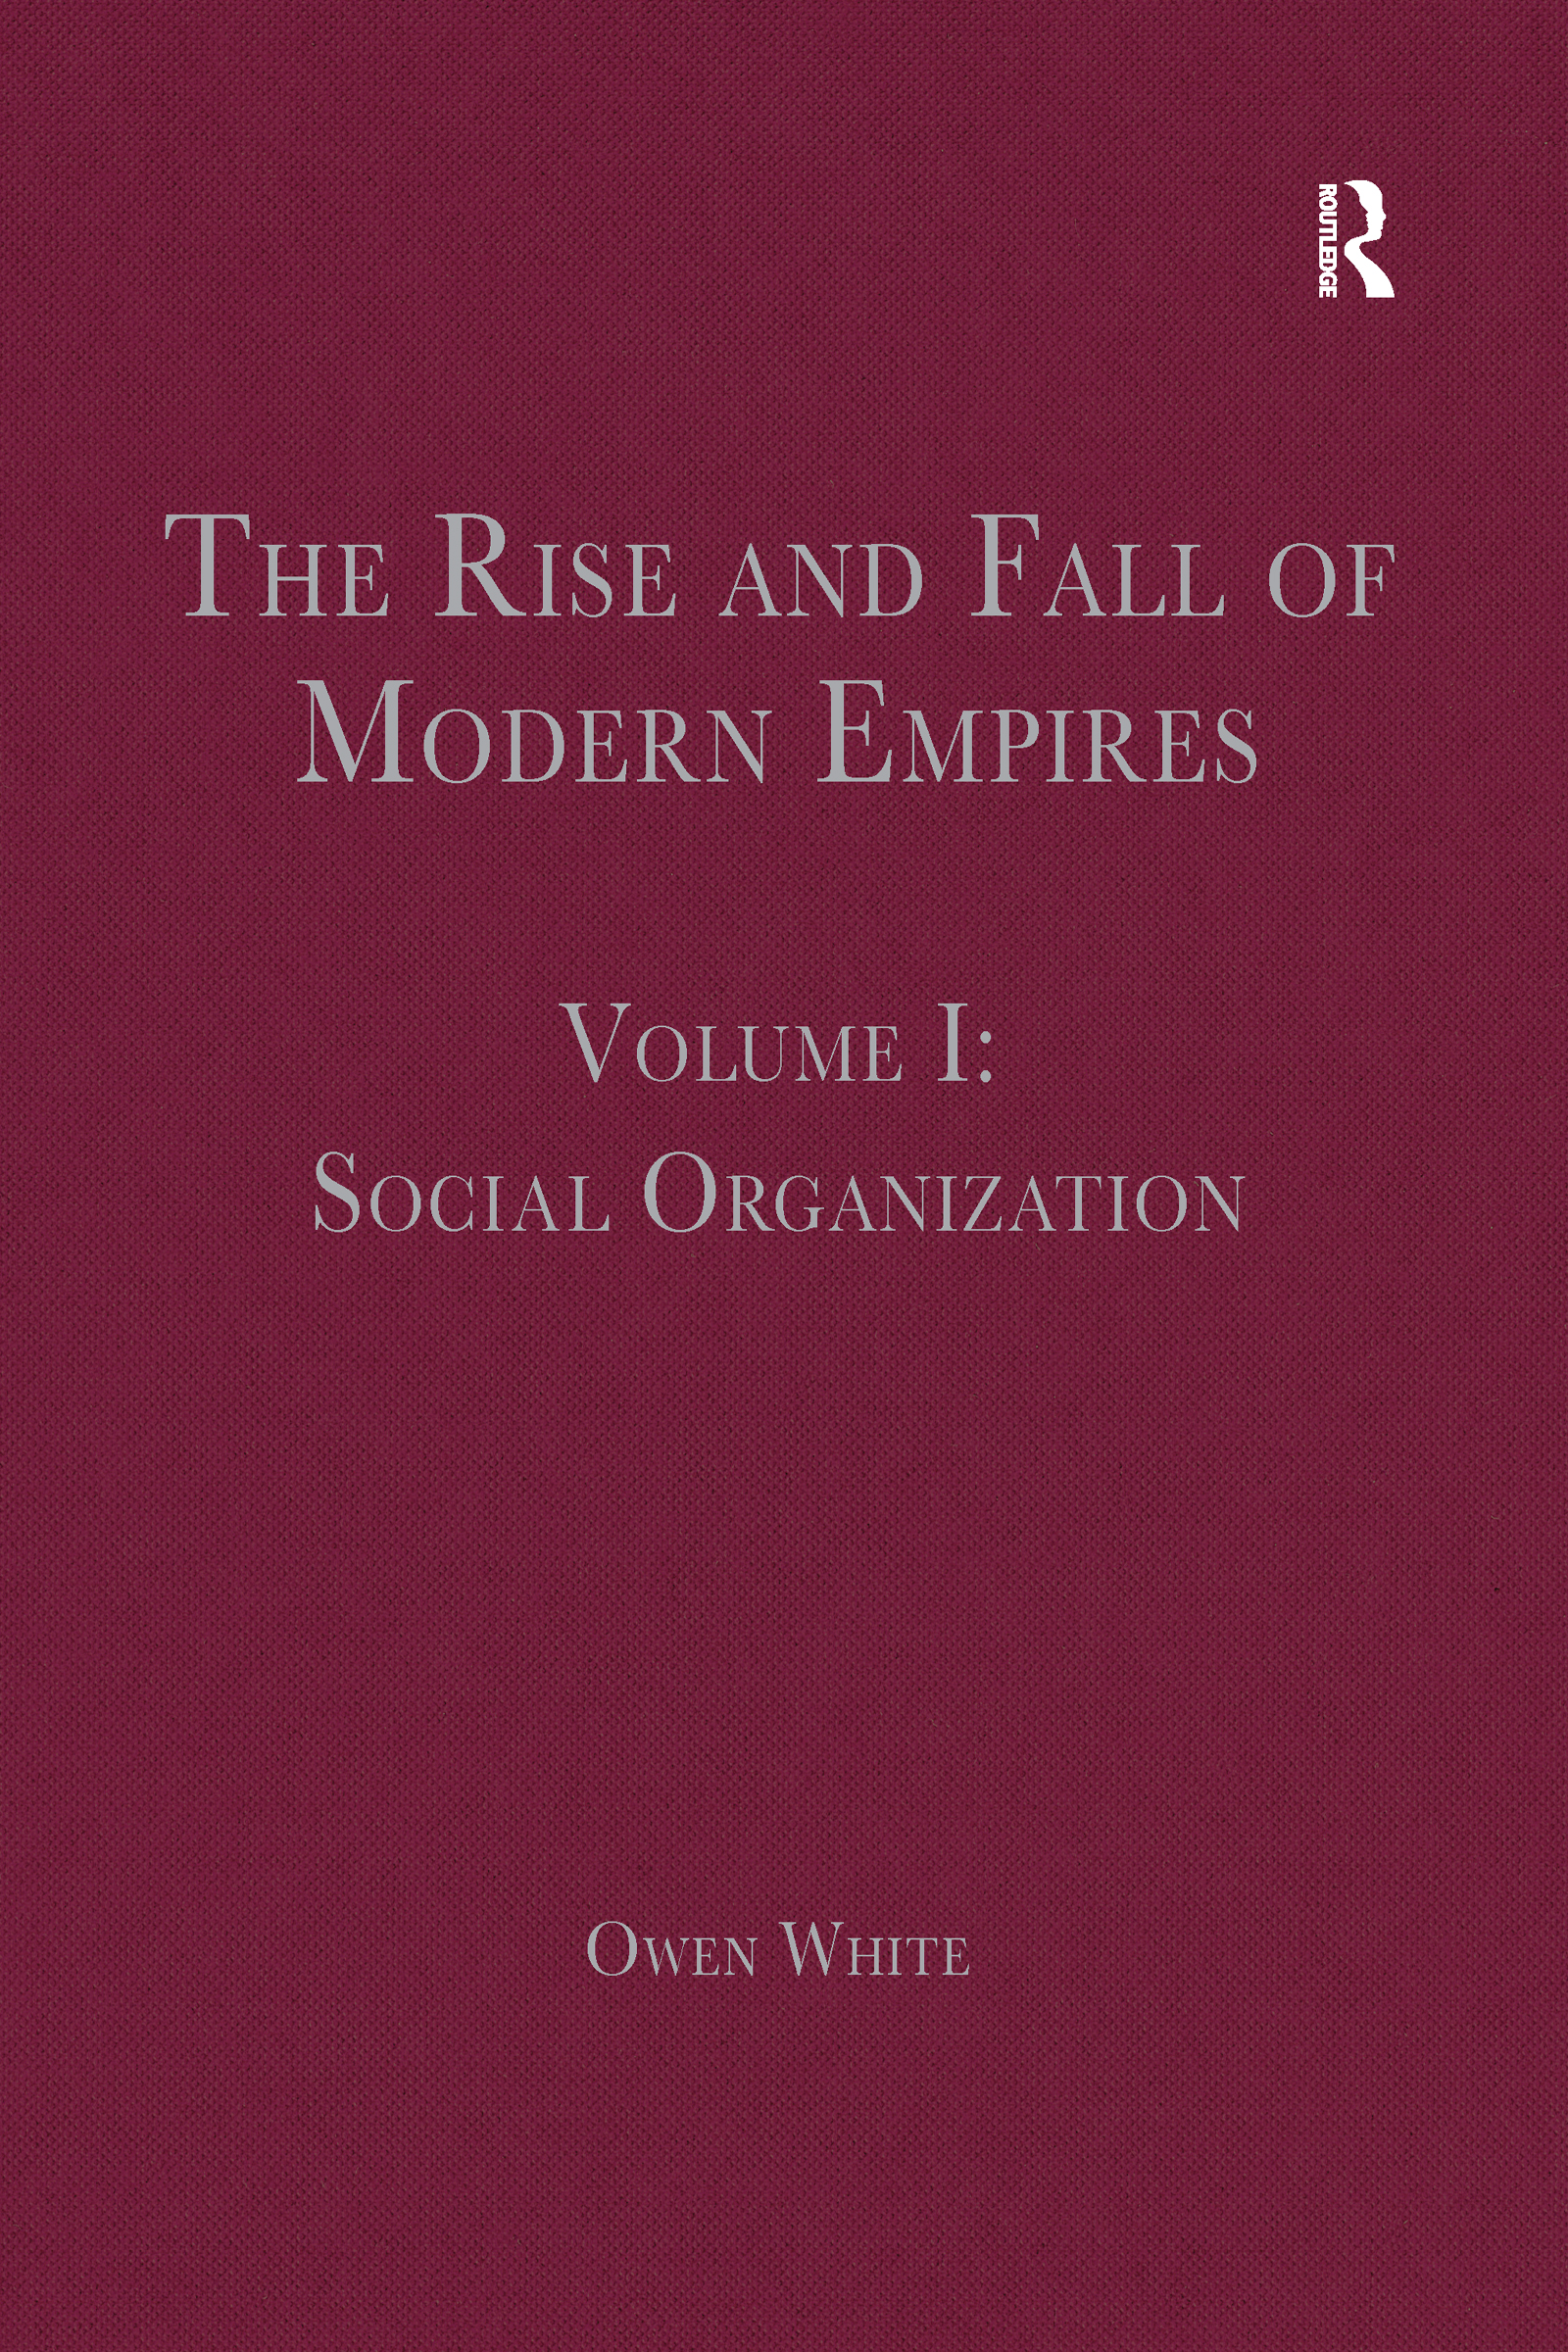 The Rise and Fall of Modern Empires, Volume I: Social Organization book cover